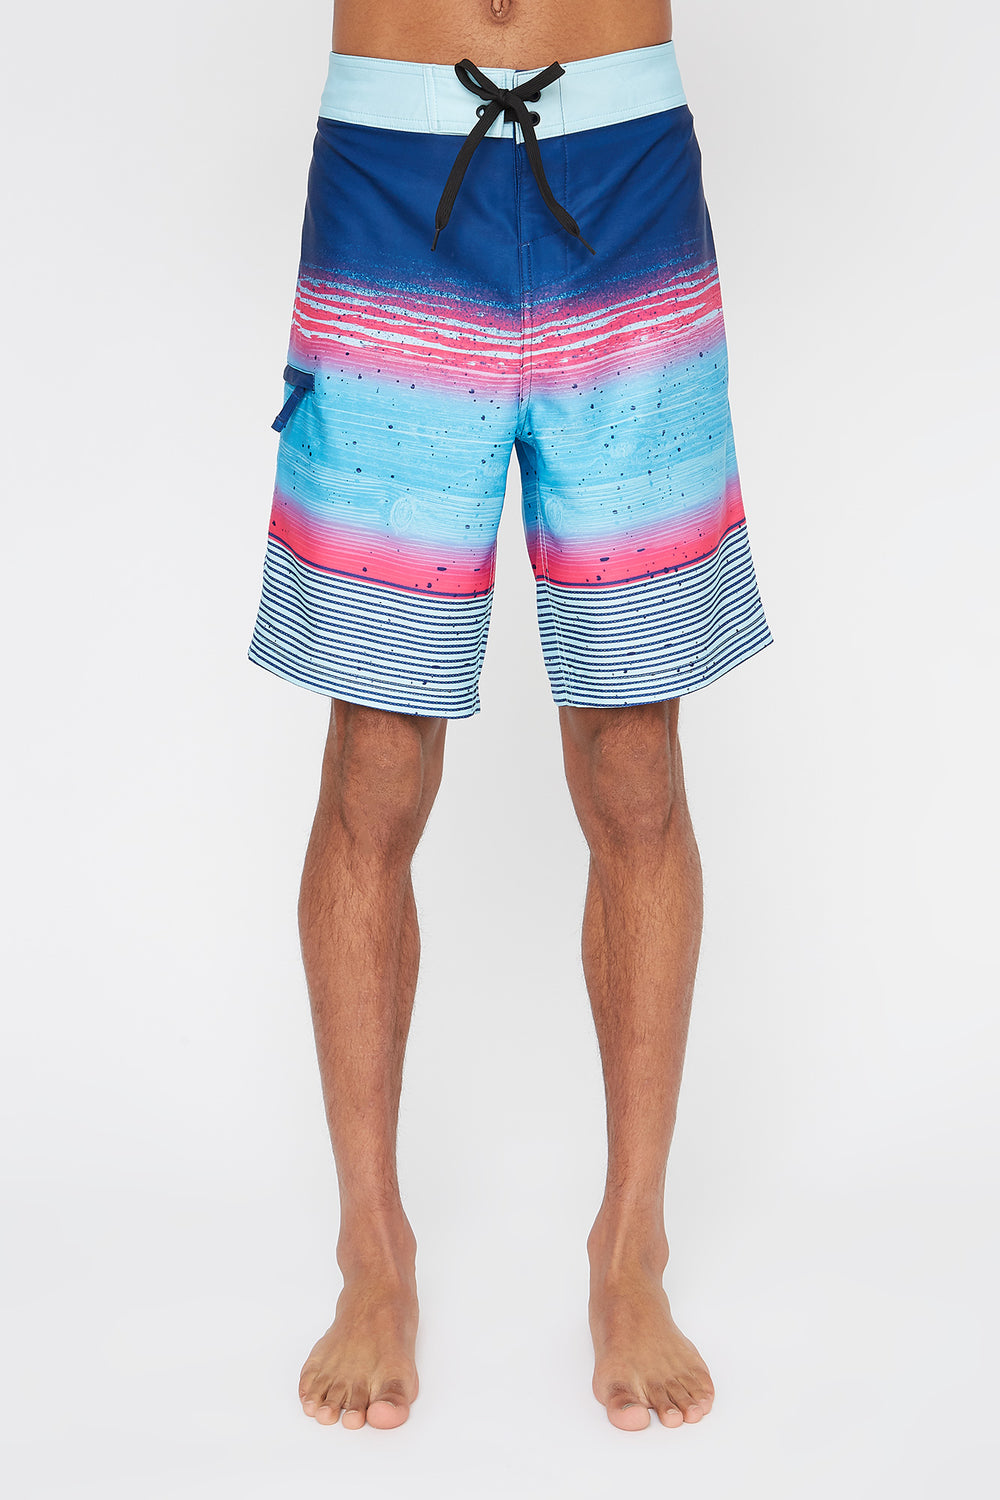 REPREVE® Mens Multicolour Board Shorts Blue